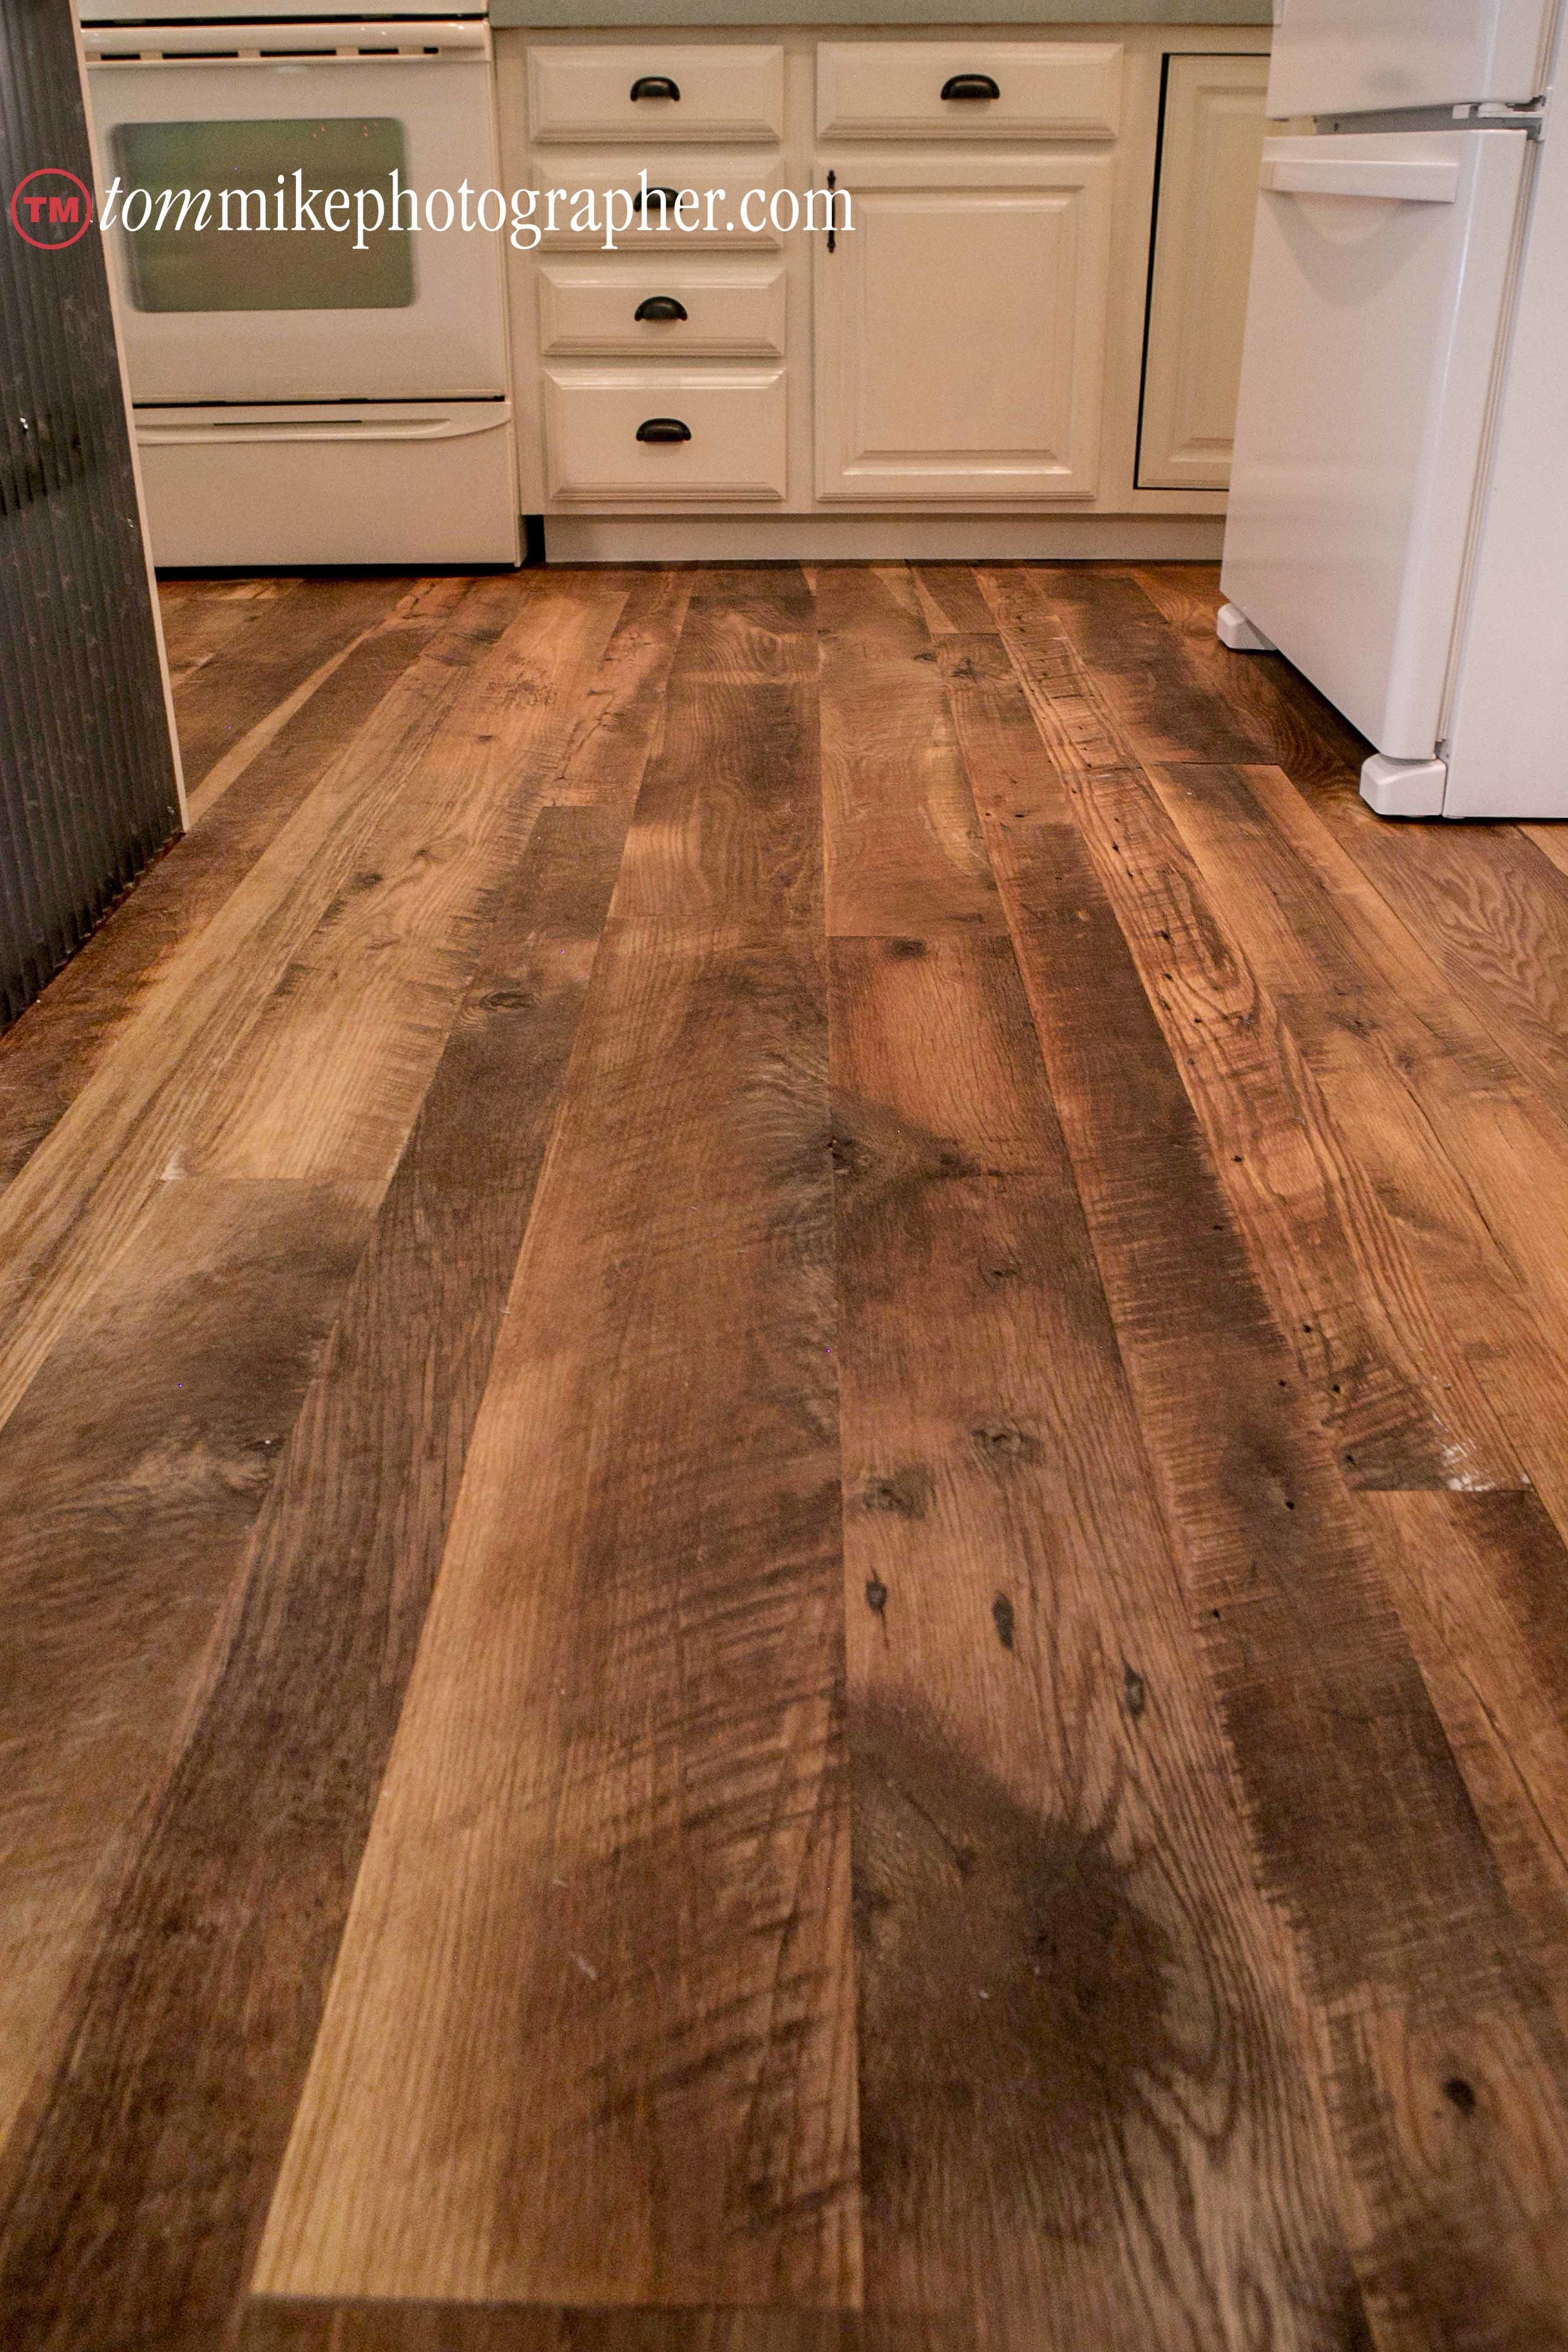 Mix of Reclaimed Red and White Oak